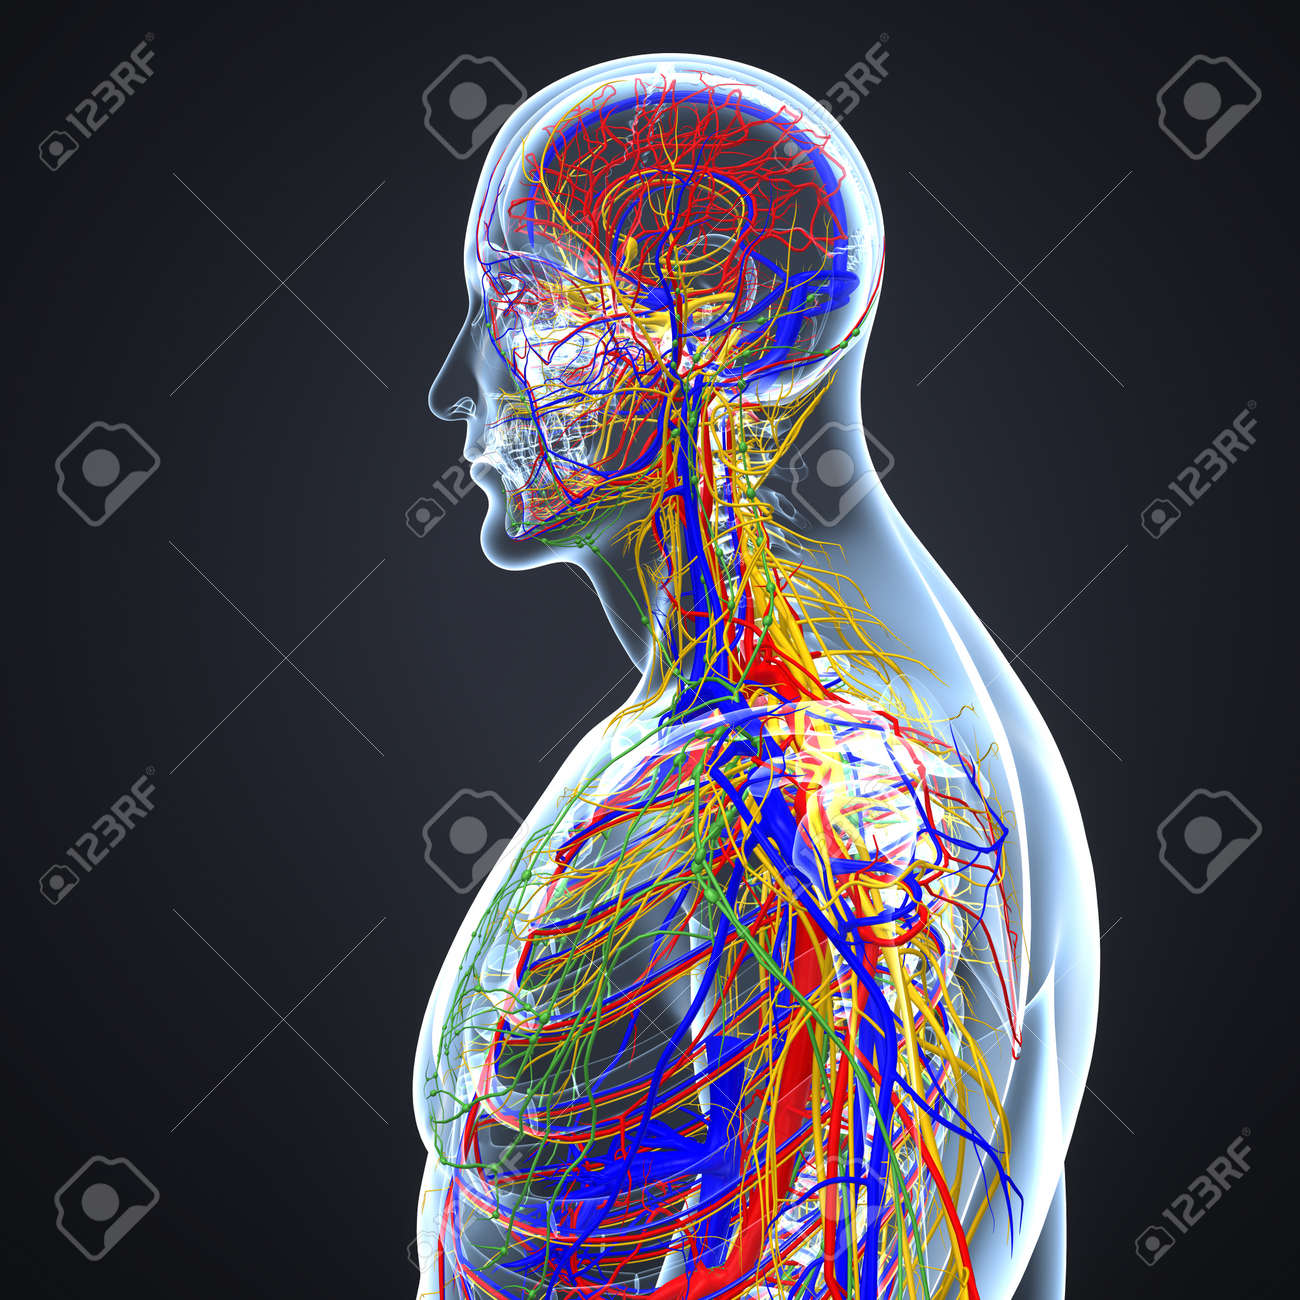 Circulatory and Nervous System with Lymph Nodes - 105318257